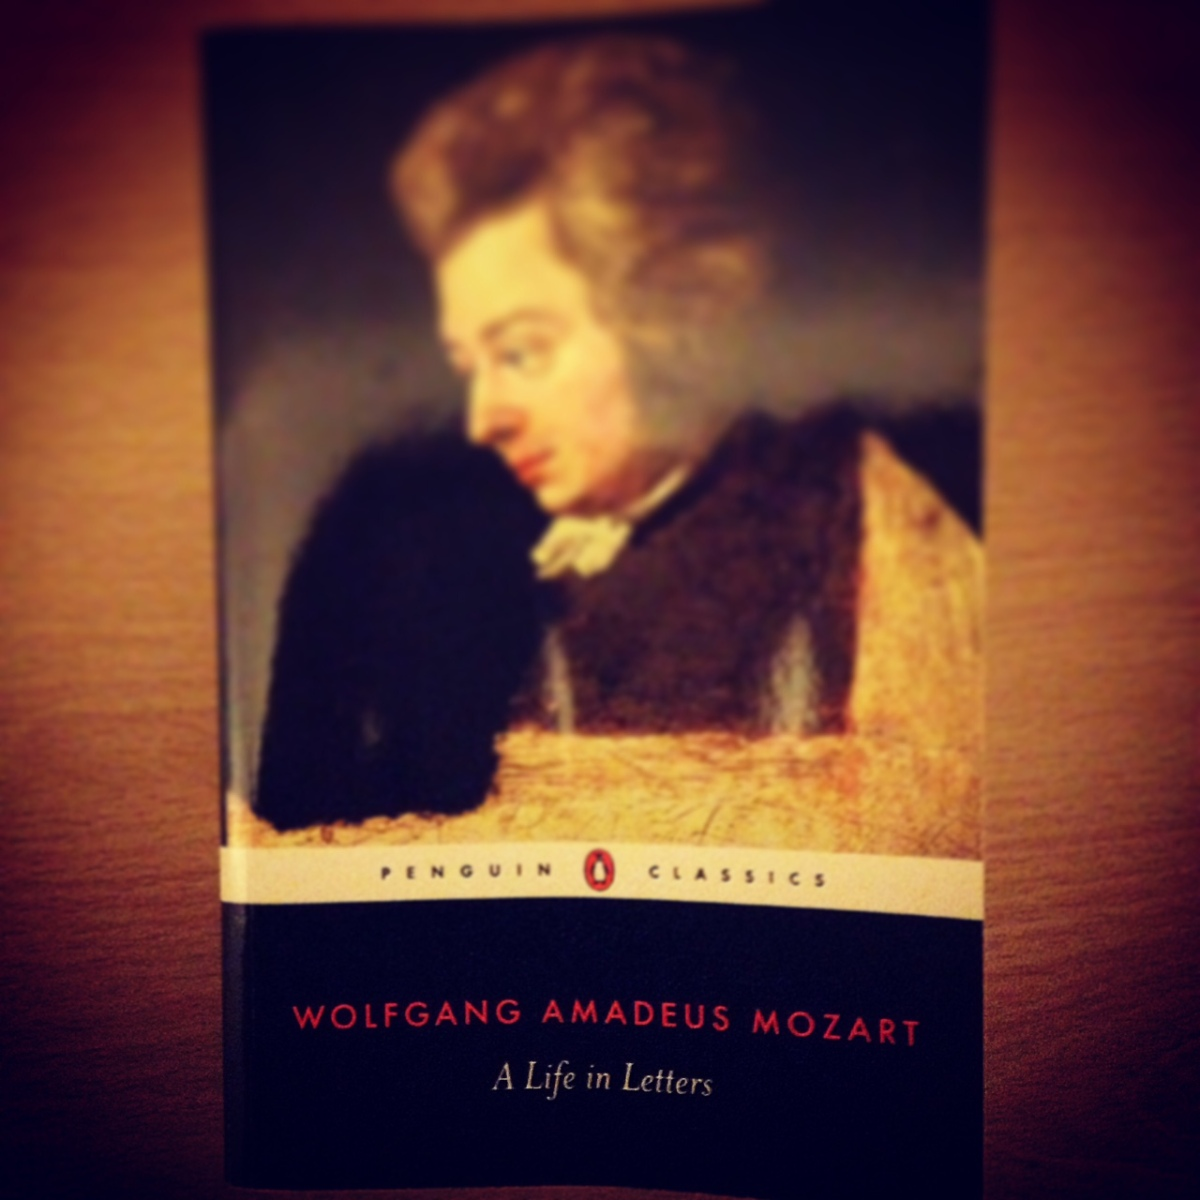 Mozart Lettere: Mozart's A Life In Letters